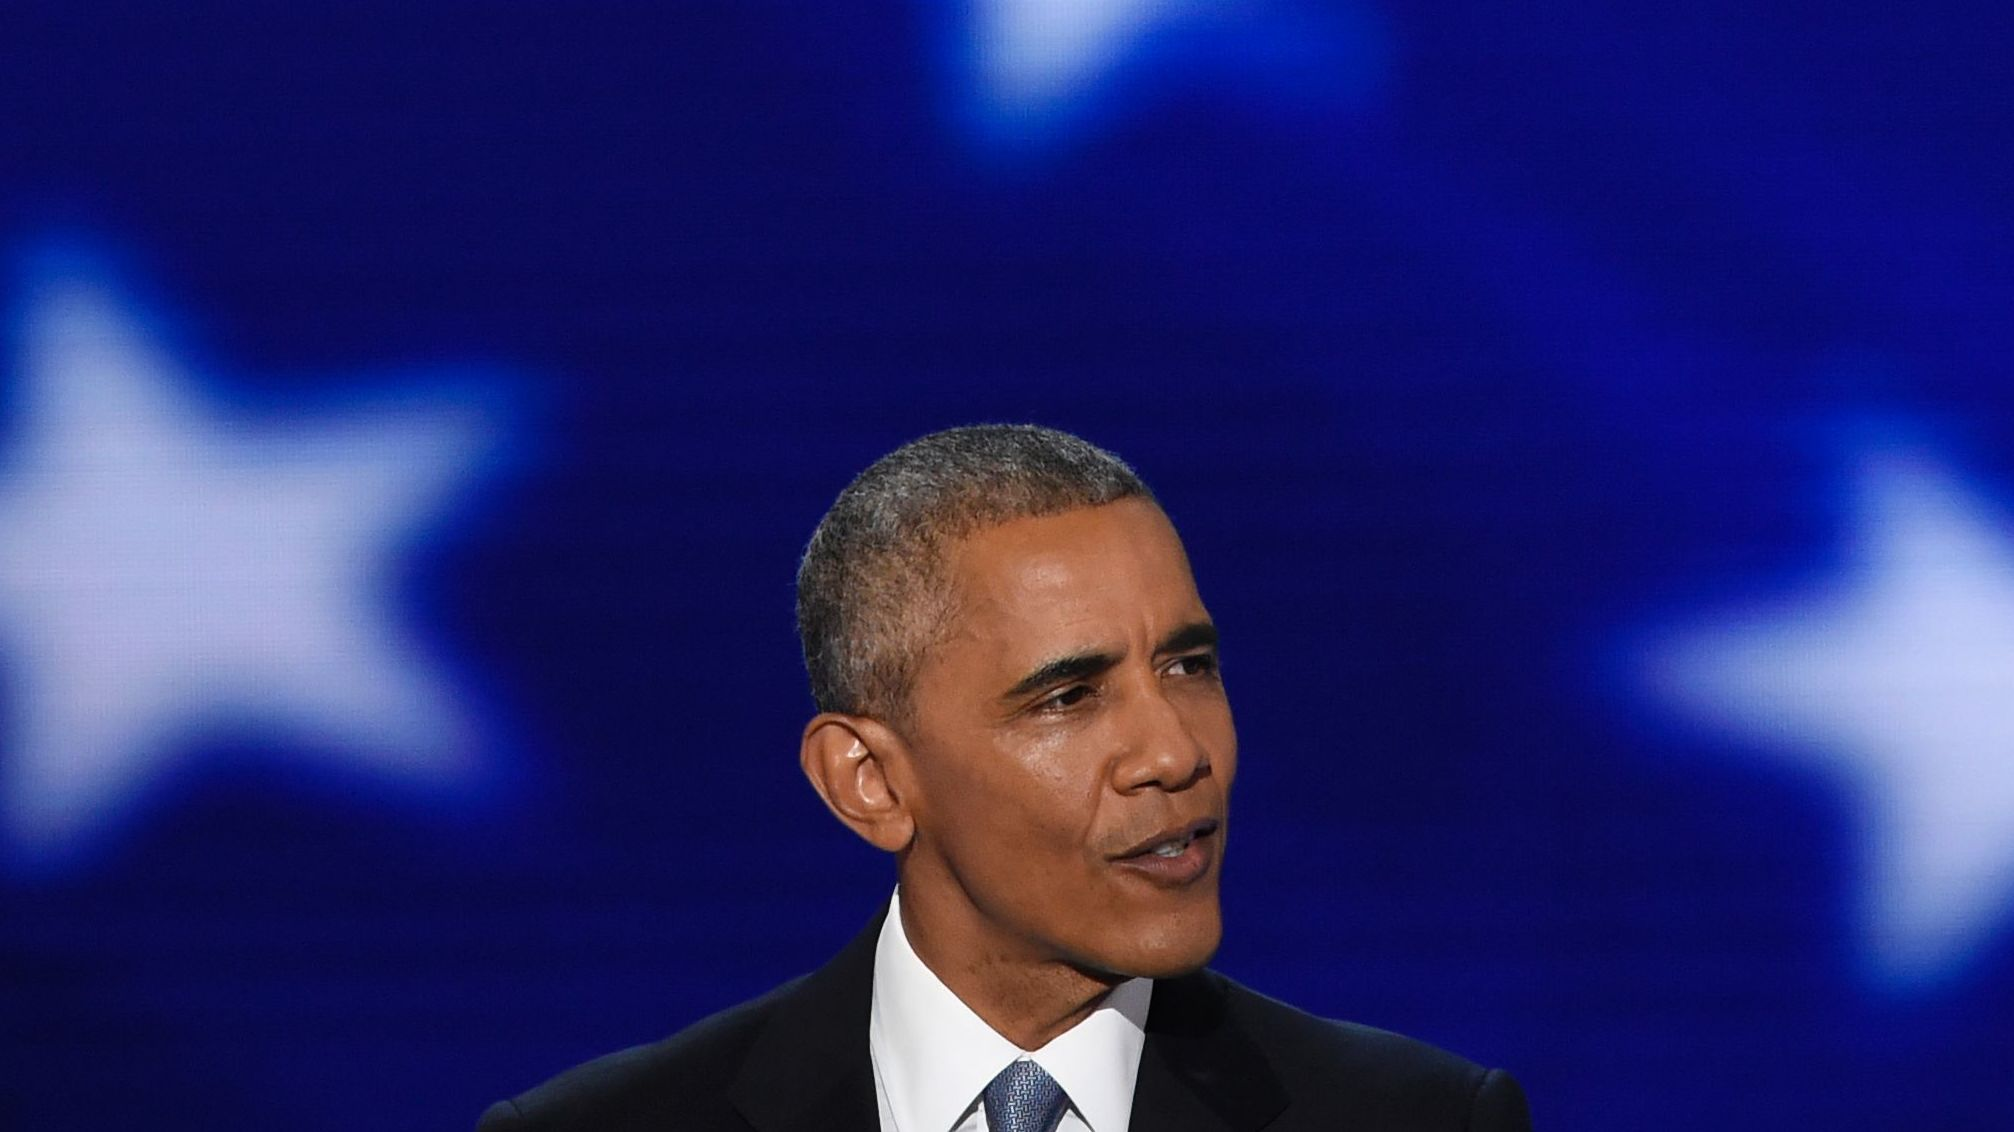 President Obama's Speech At The Democratic Convention